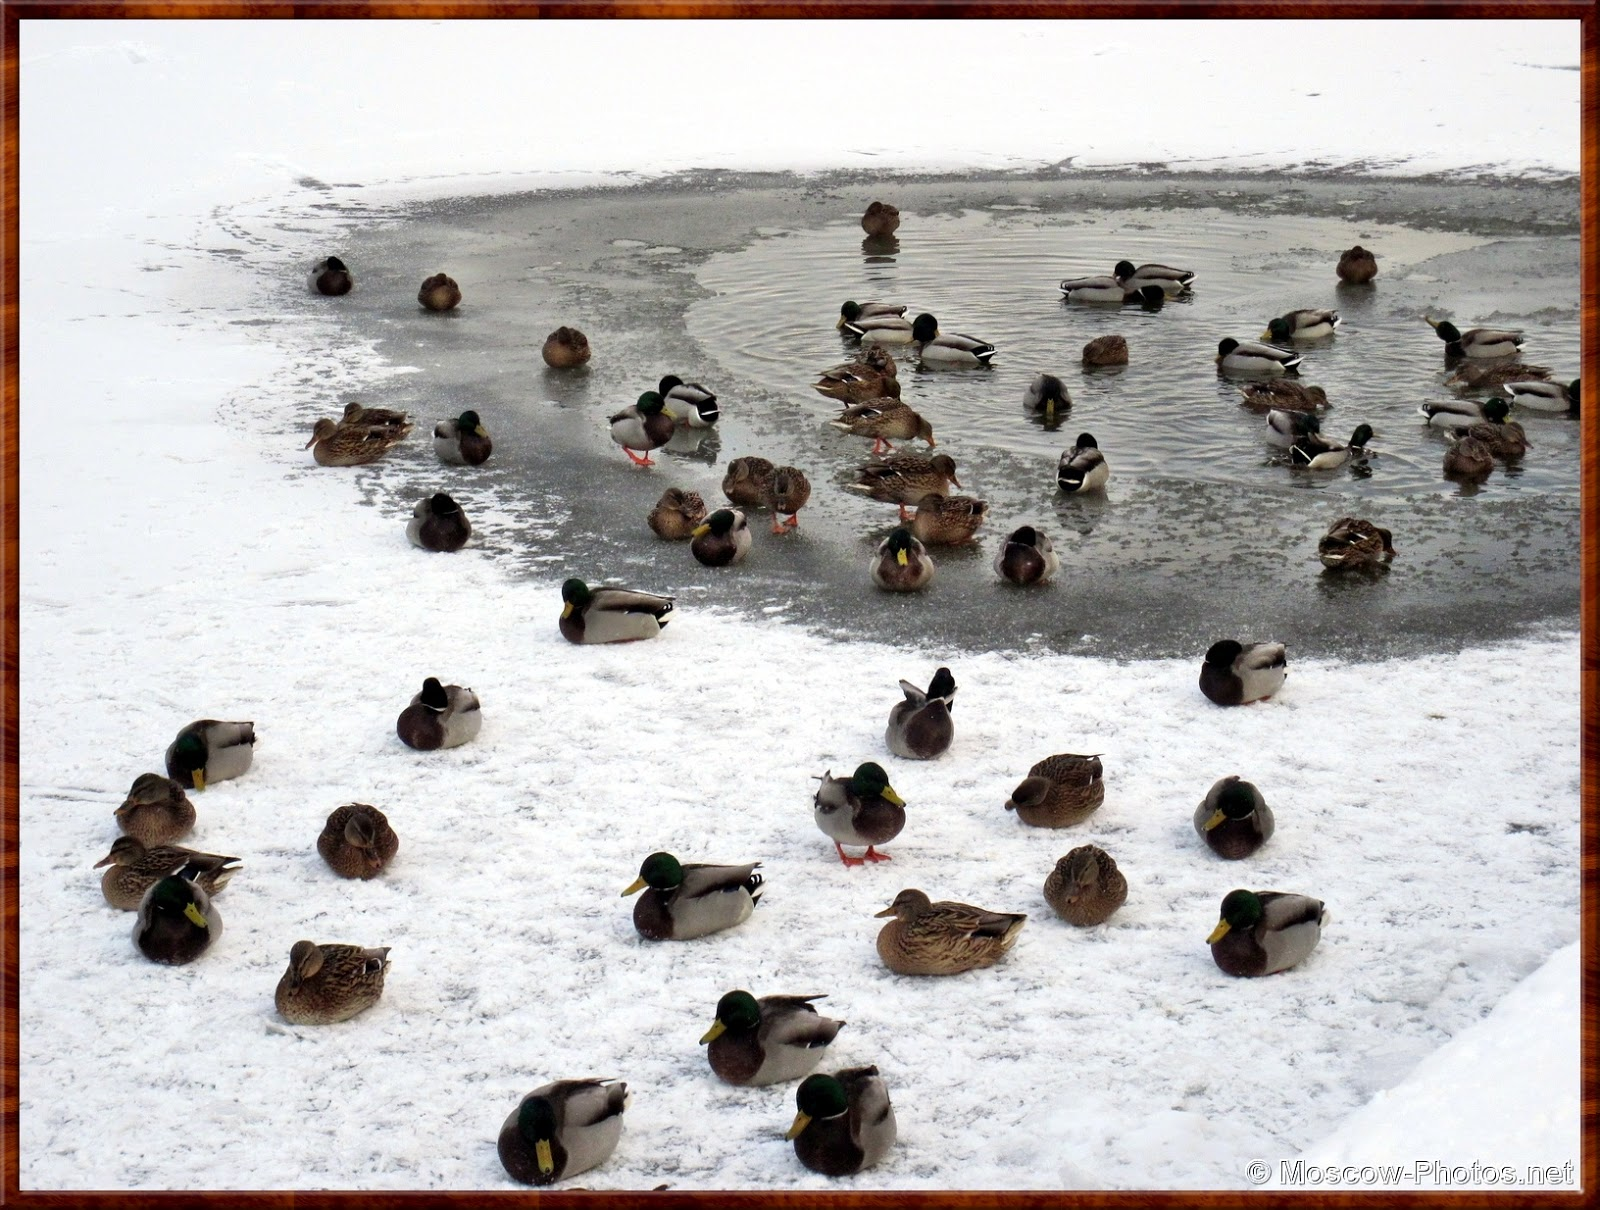 Moscow River - Hungry Ducks